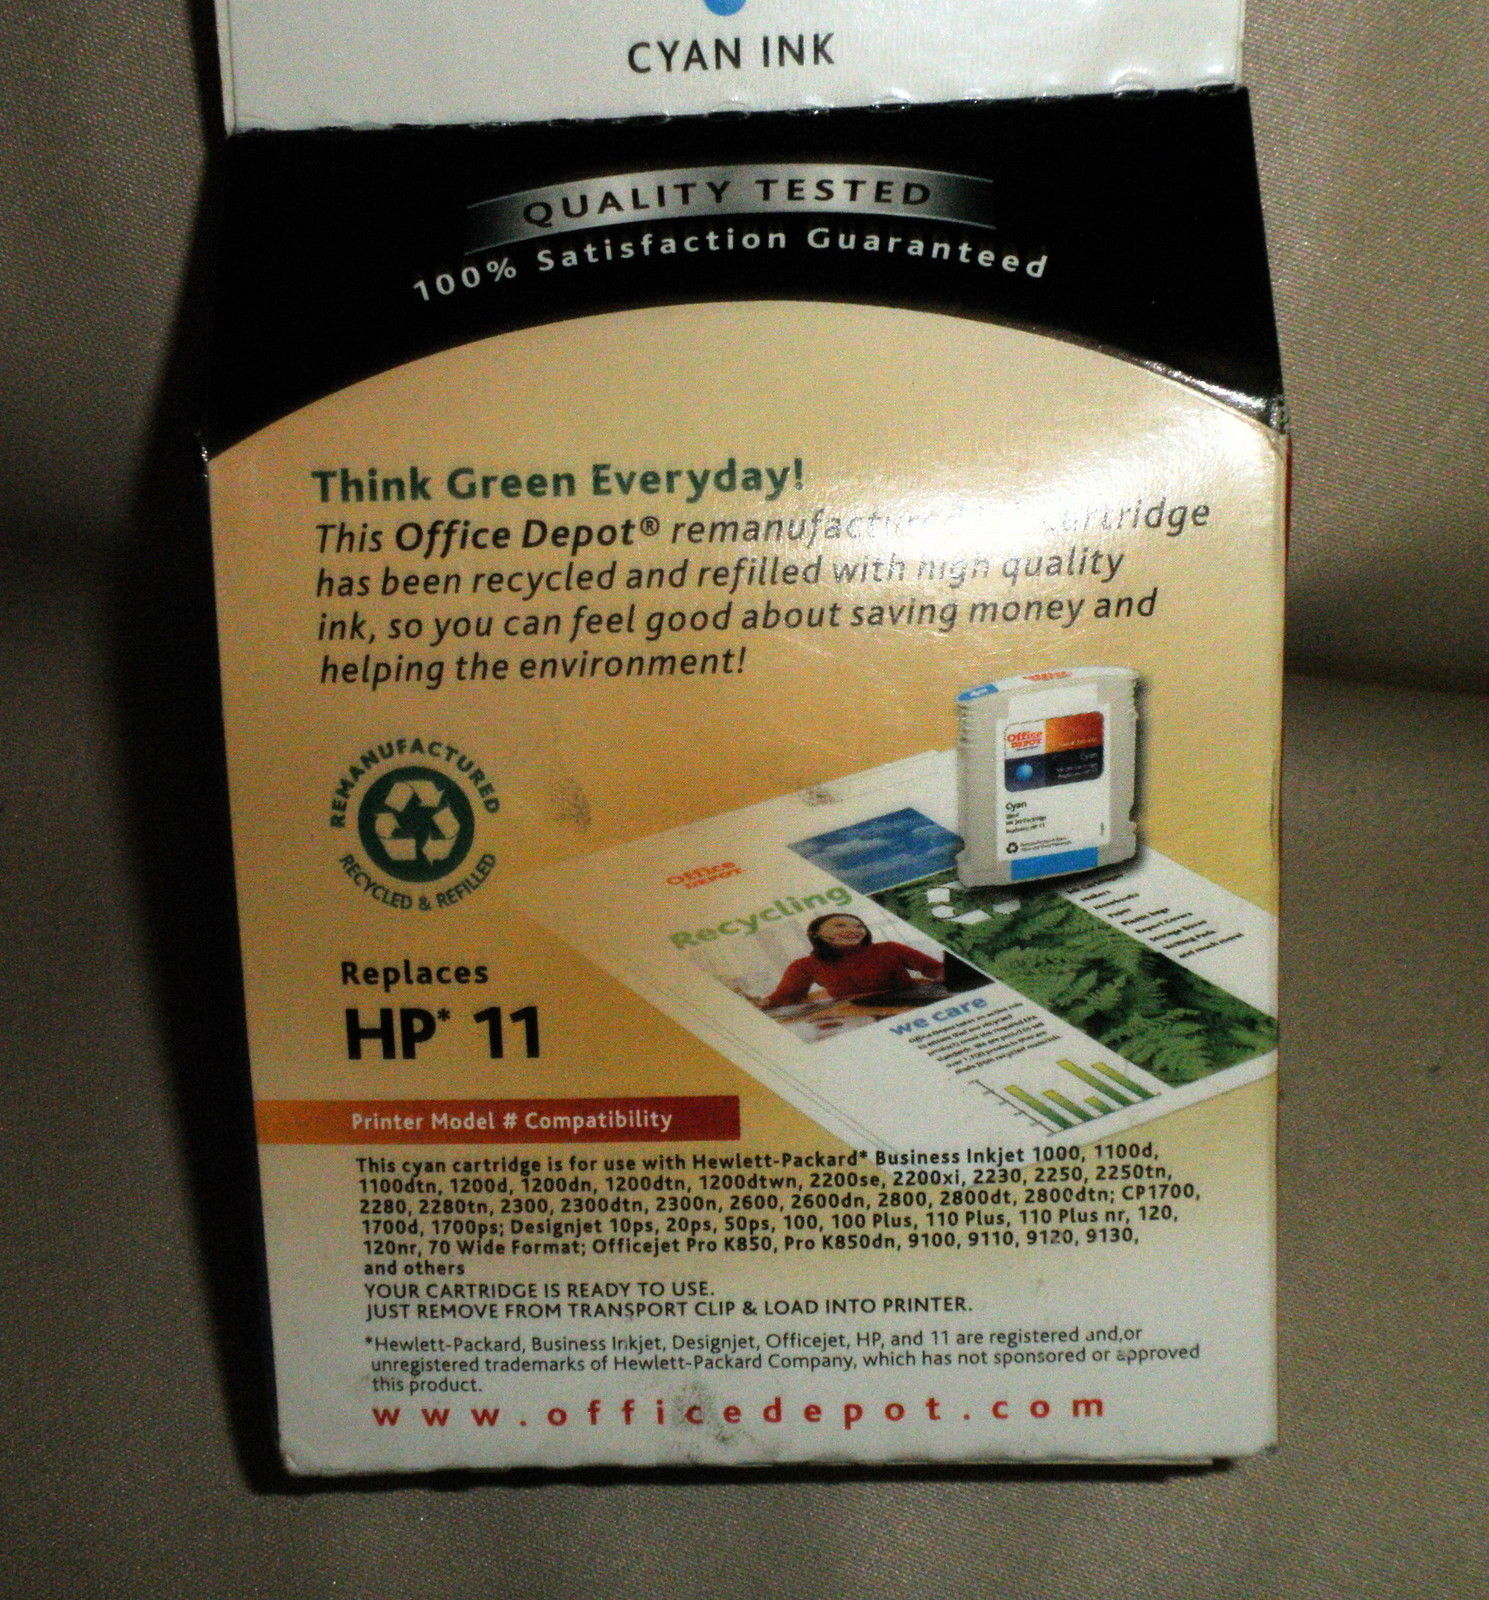 Office Depot Remanufactured Ink Cartridge Replaces HP11 Cyan Ink #330-650